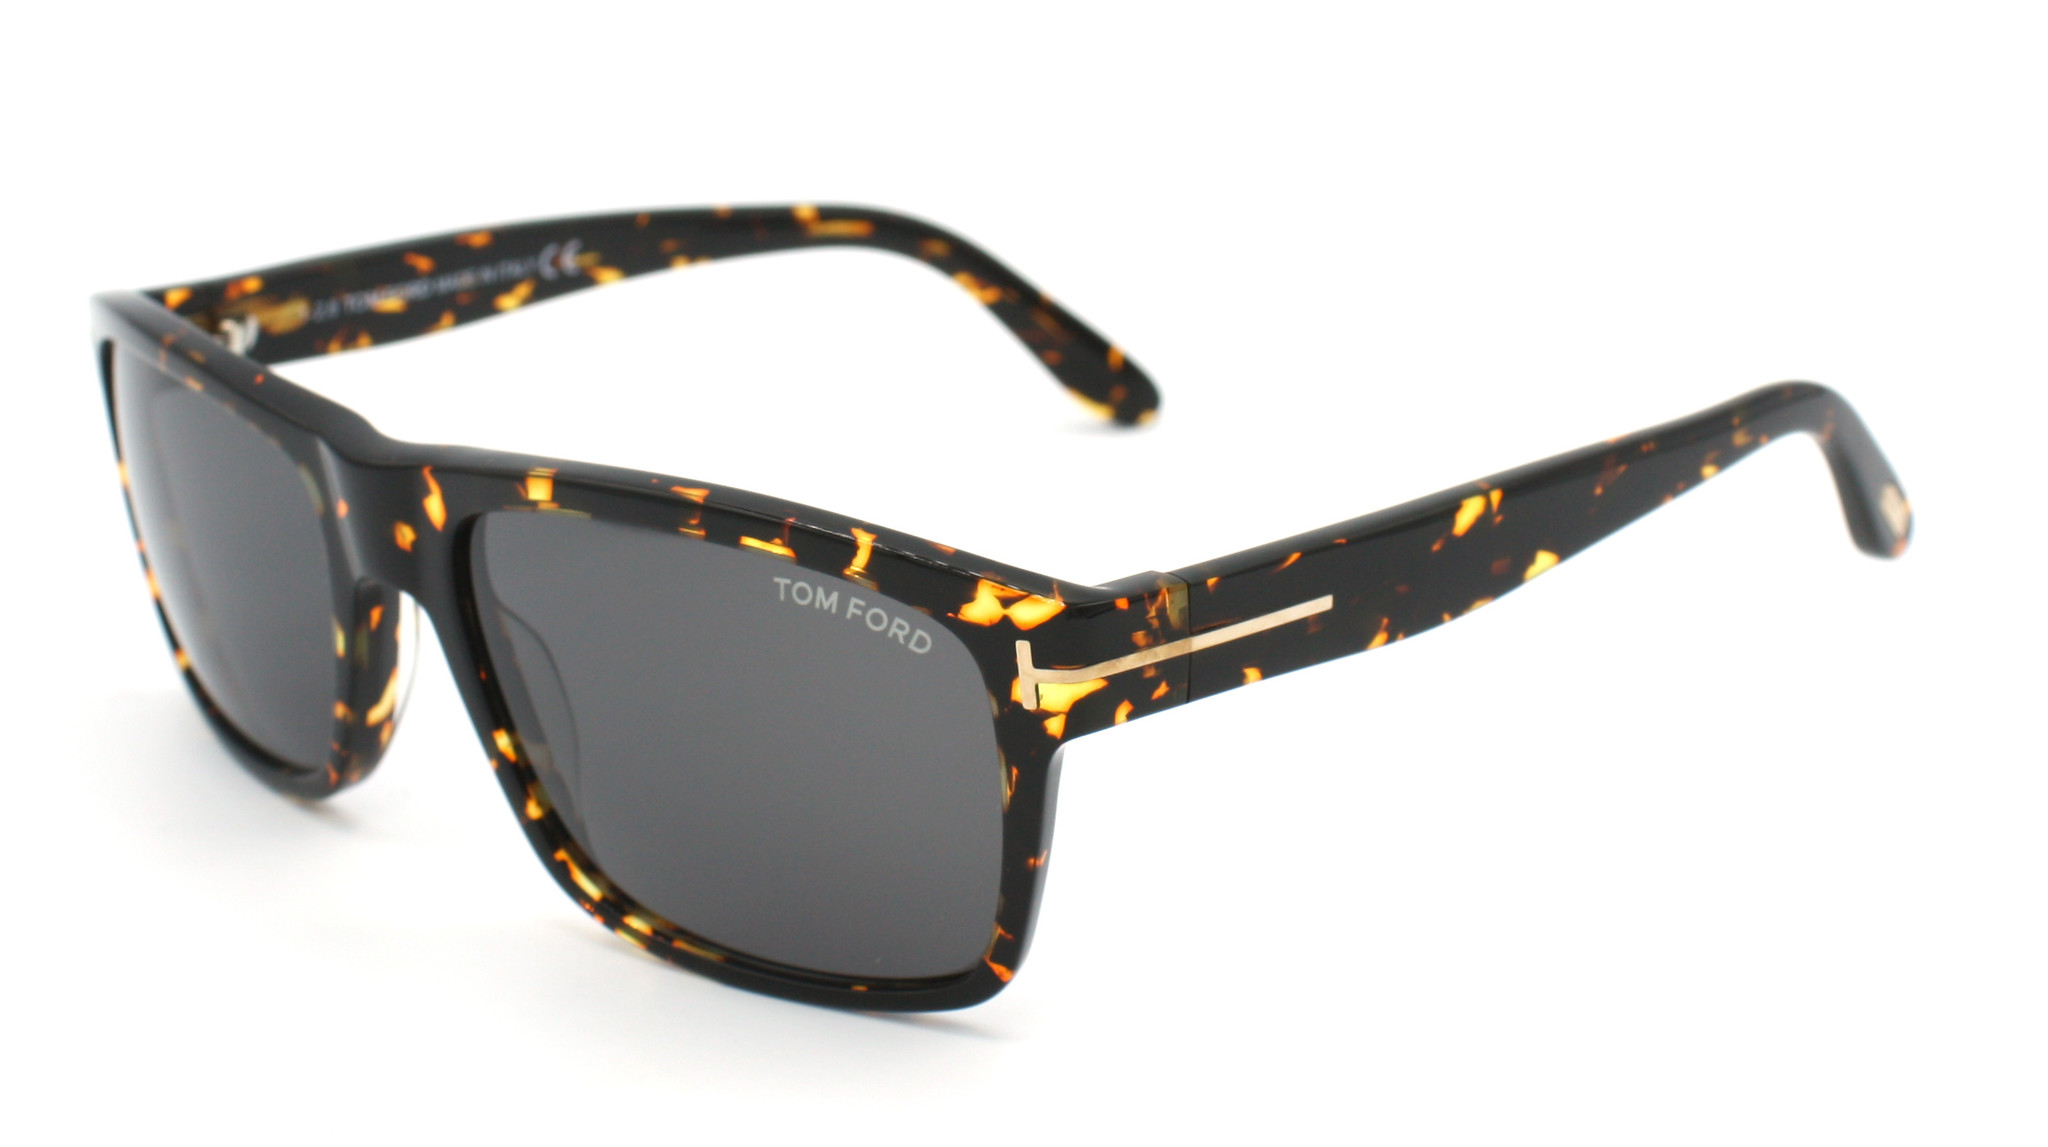 Tom Ford - TF678 - 52A-2